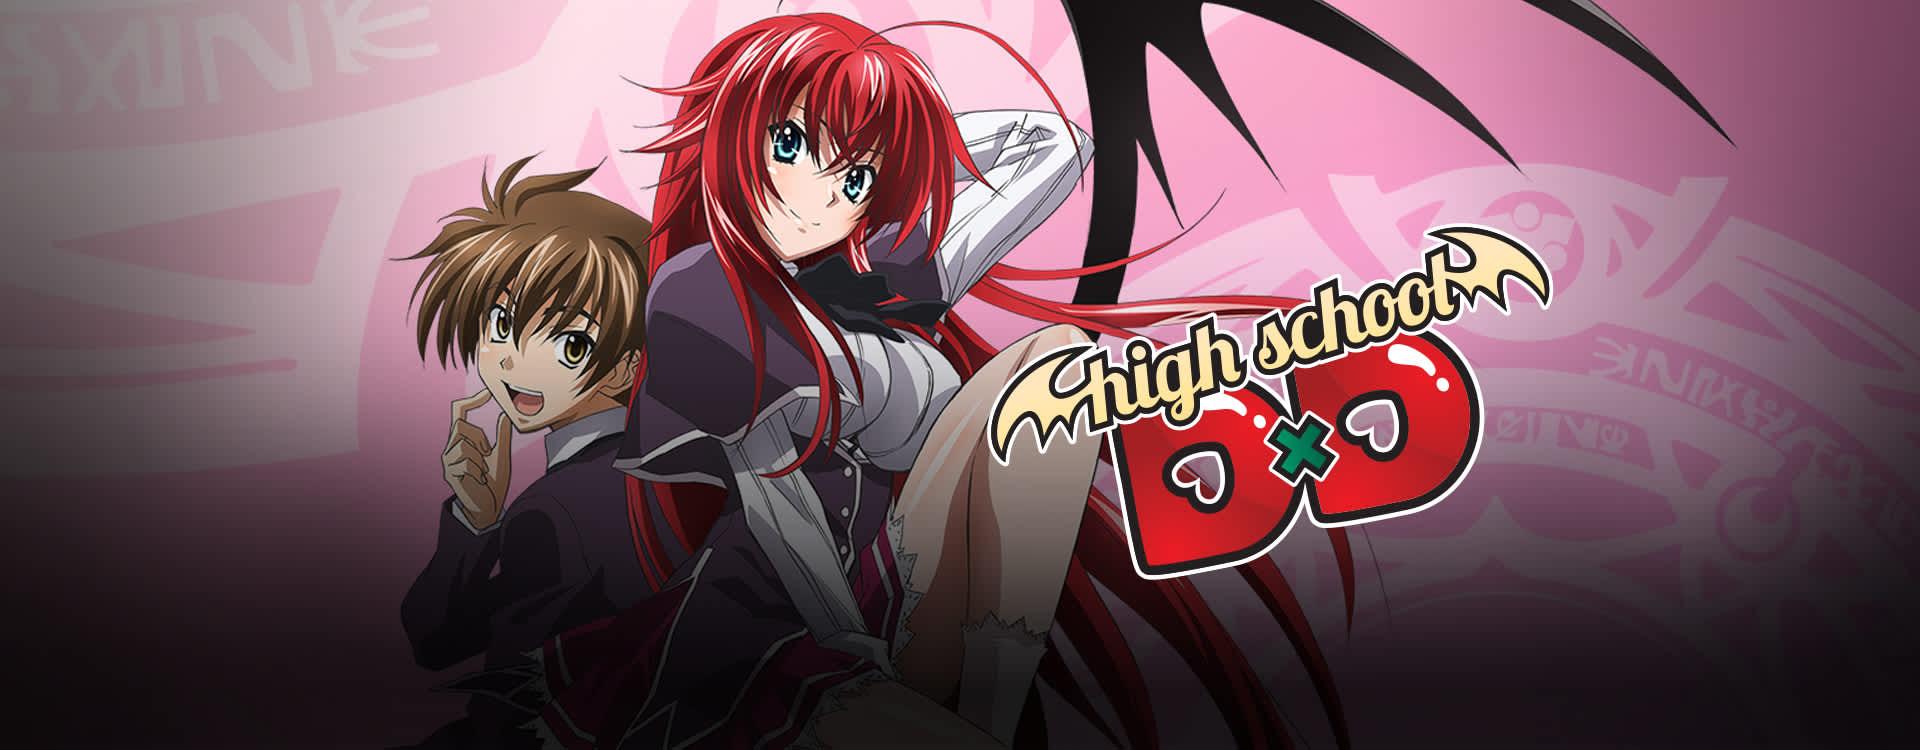 Highschool dxd season 3 episode 2 english dubbed